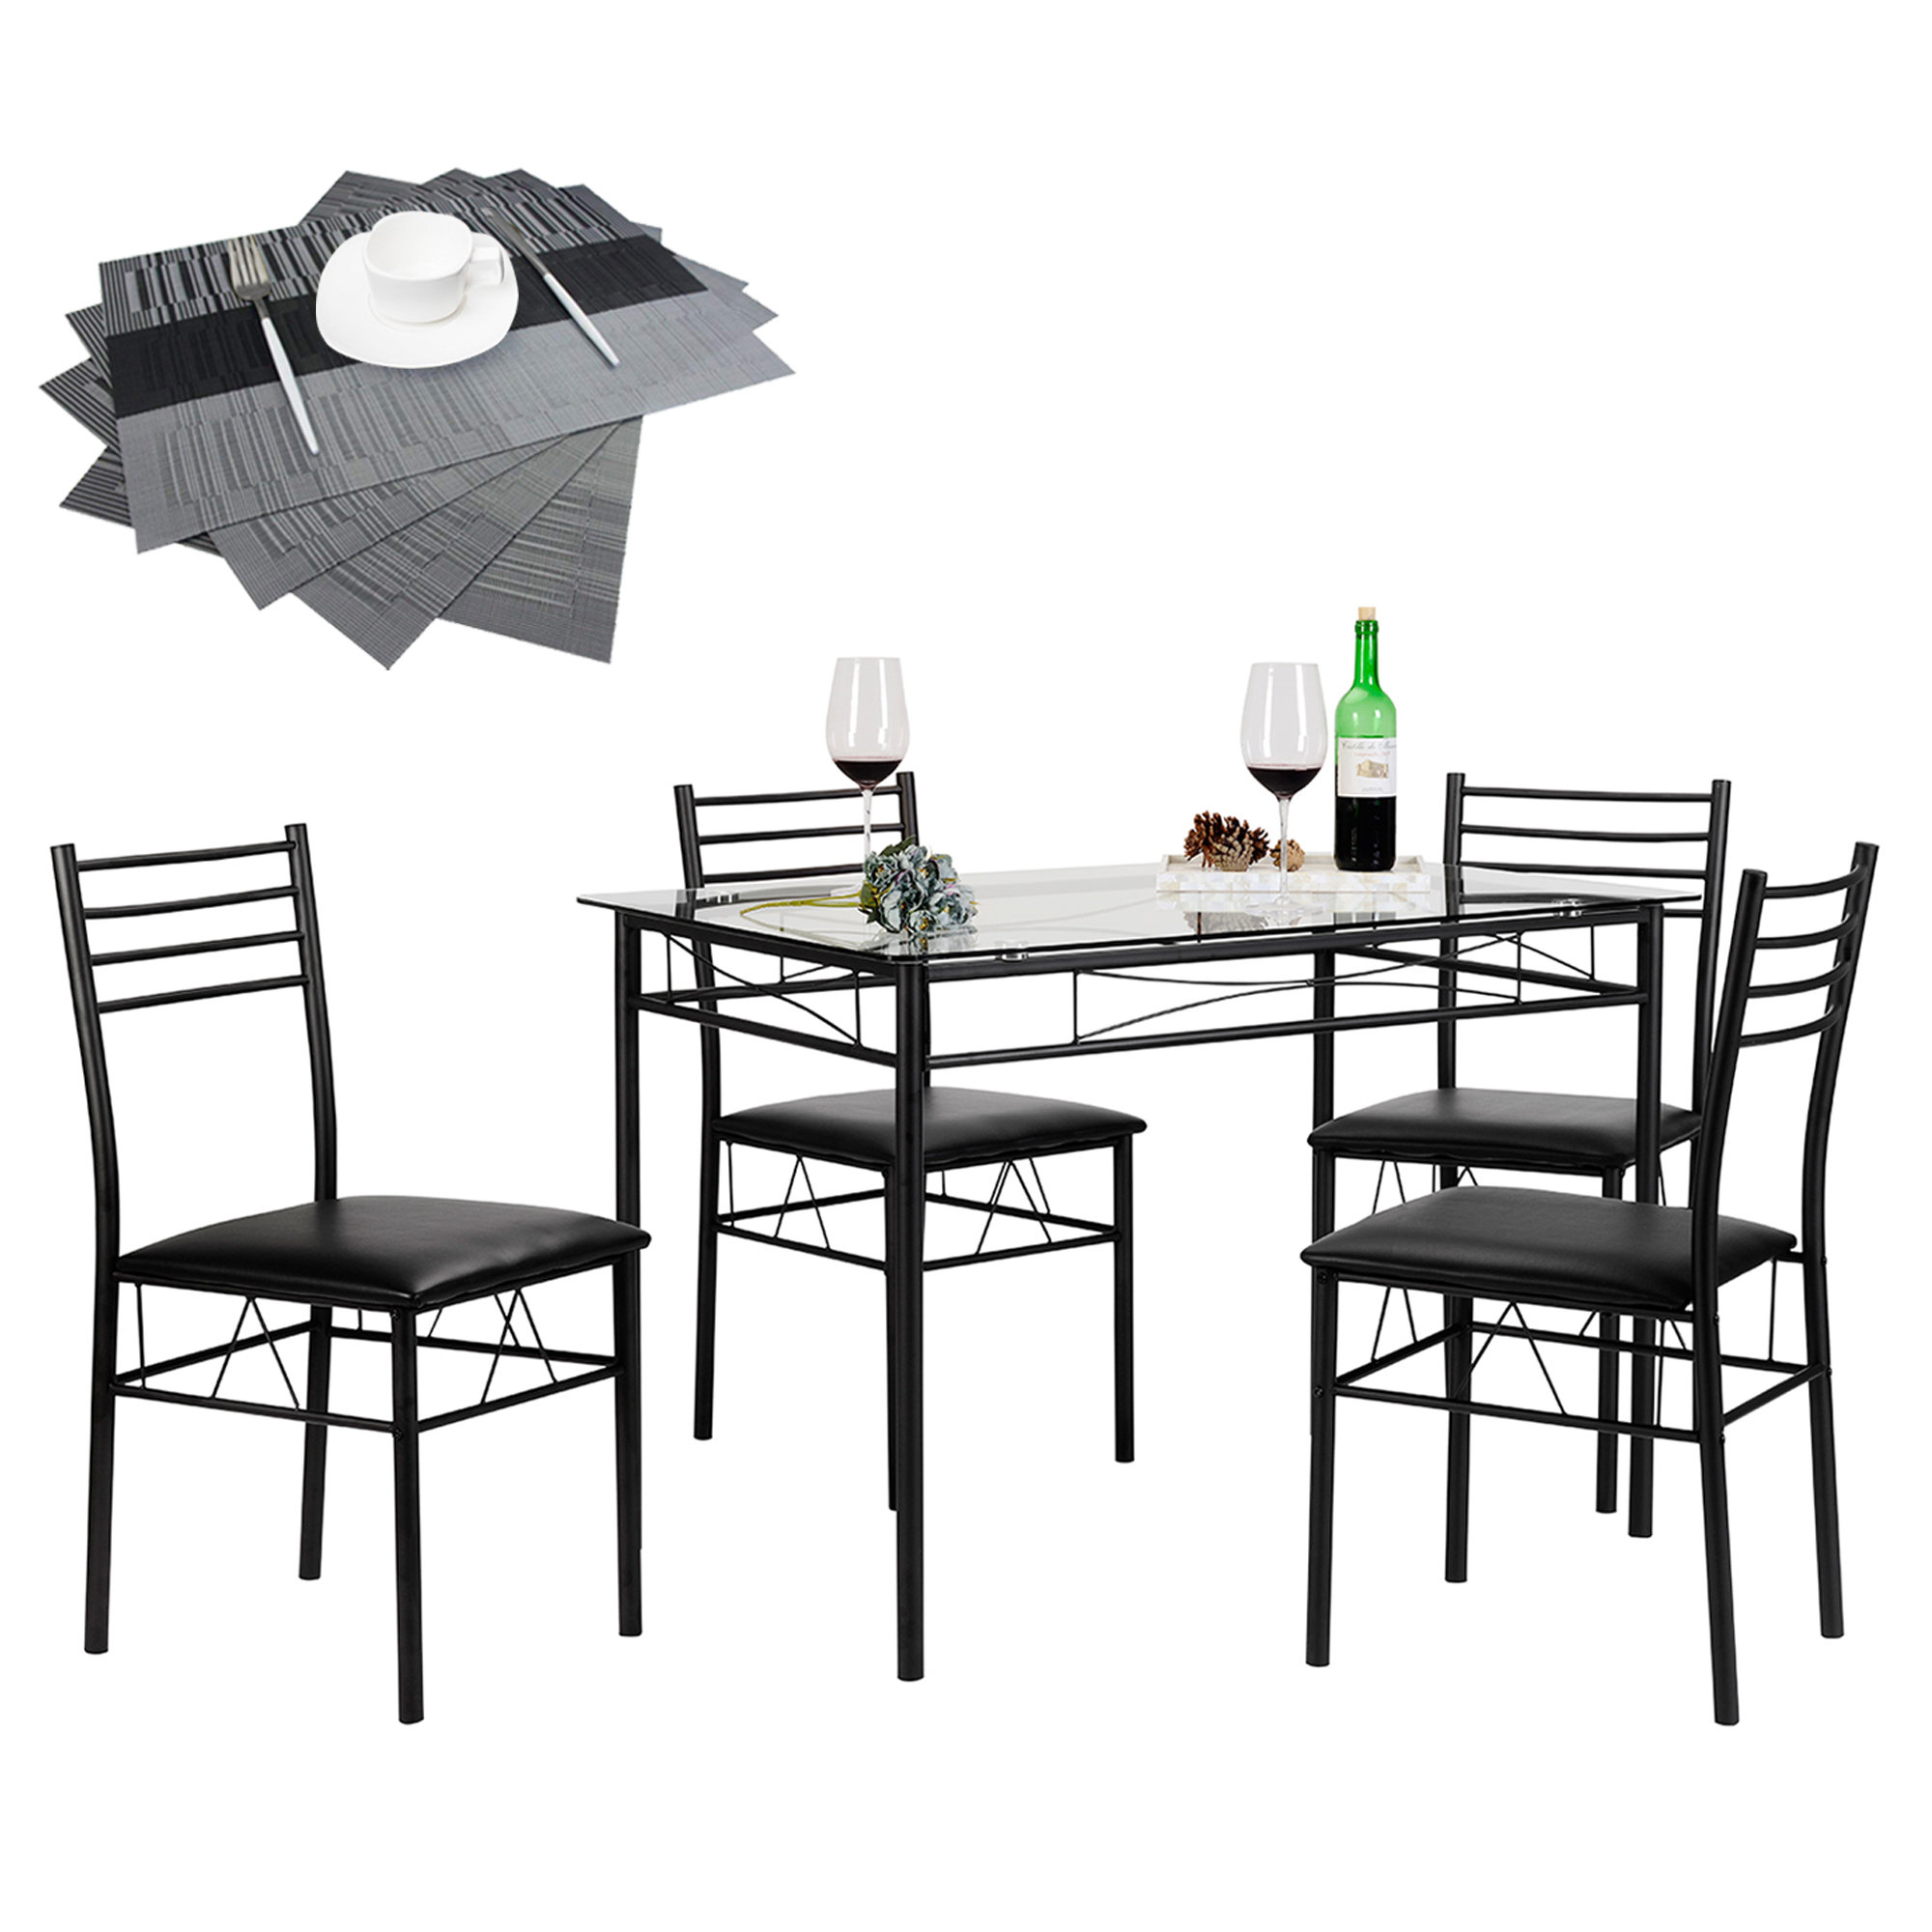 North Reading 5 Piece Dining Table Set Within Newest North Reading 5 Piece Dining Table Sets (View 2 of 20)